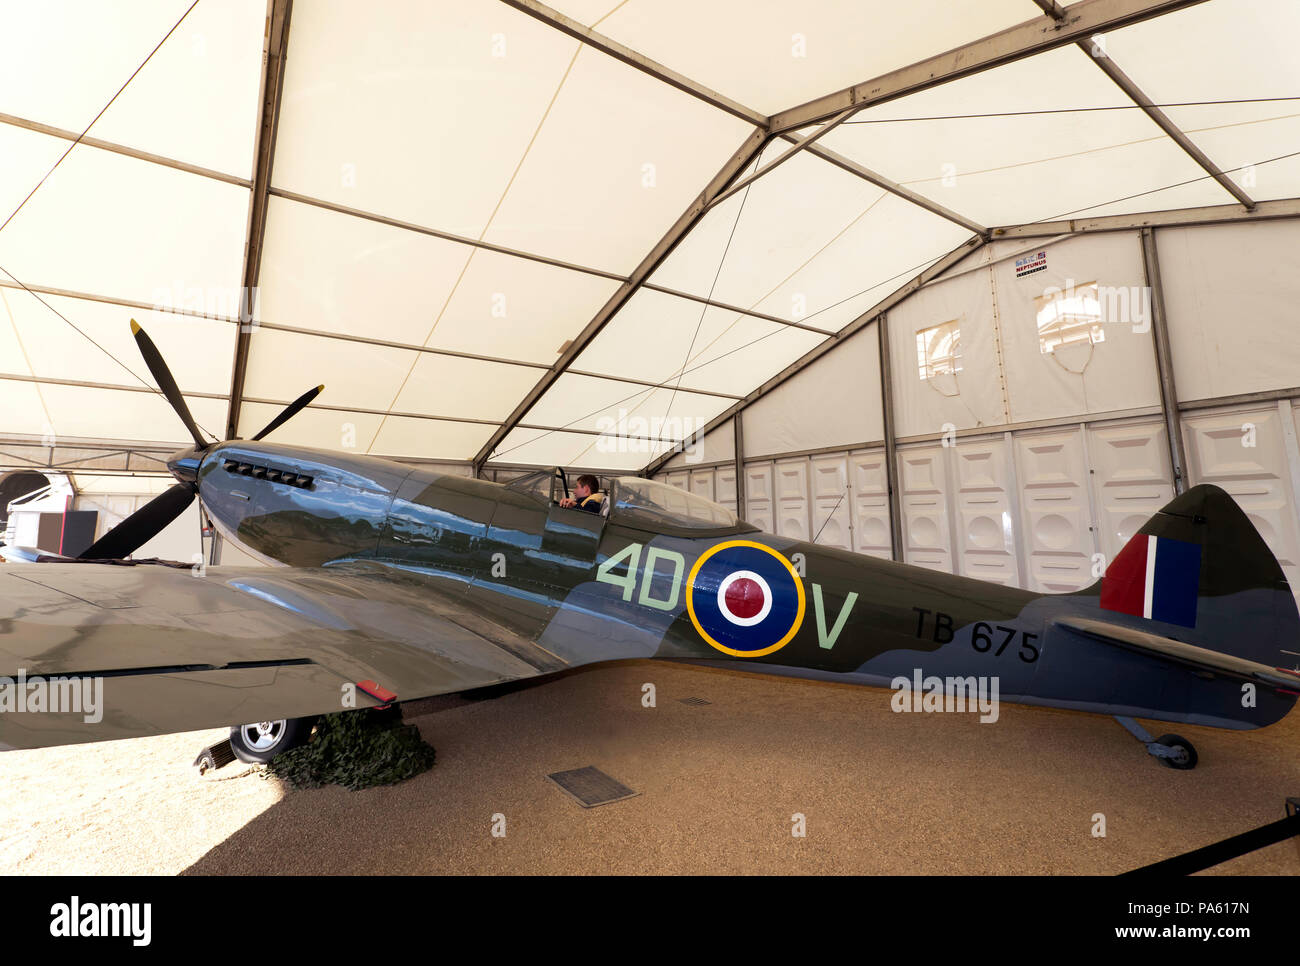 View of a  Supermarine Spitfire Mk XVI, part of the RAF Centennial Celebrations at Horse Guards Parade, - Stock Image